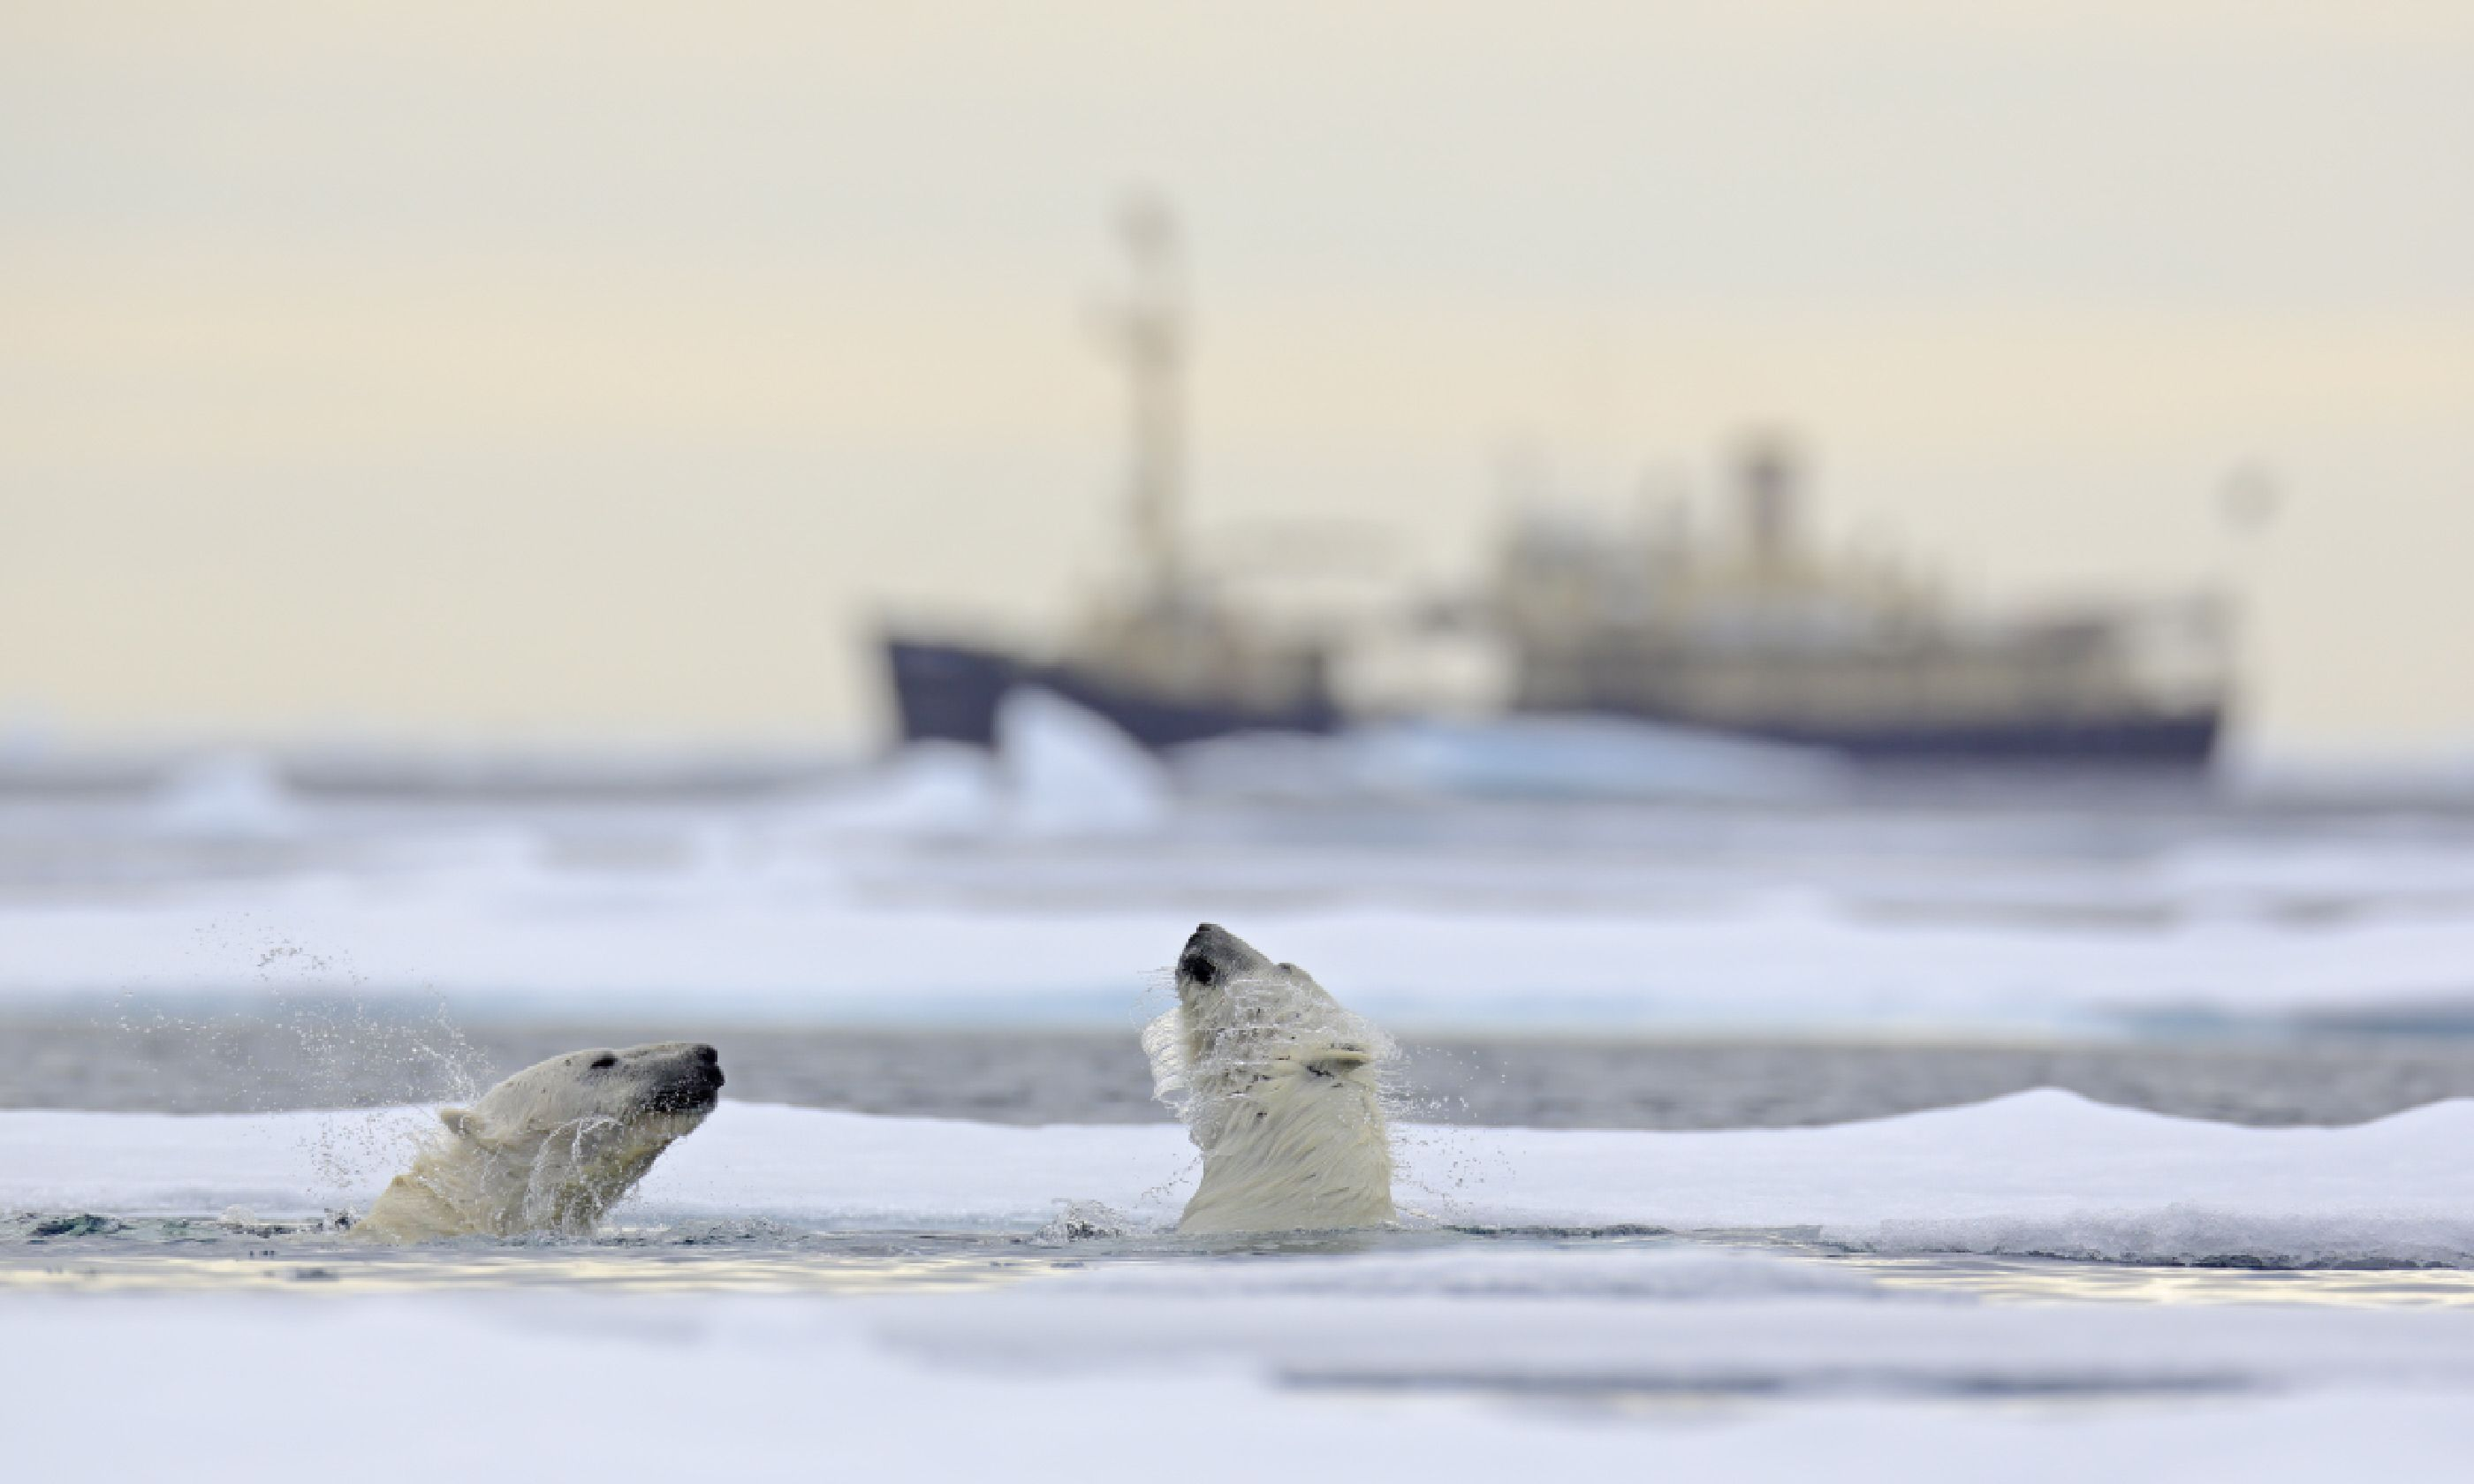 Polar bears in Svalbard, Norway (Shutterstock)